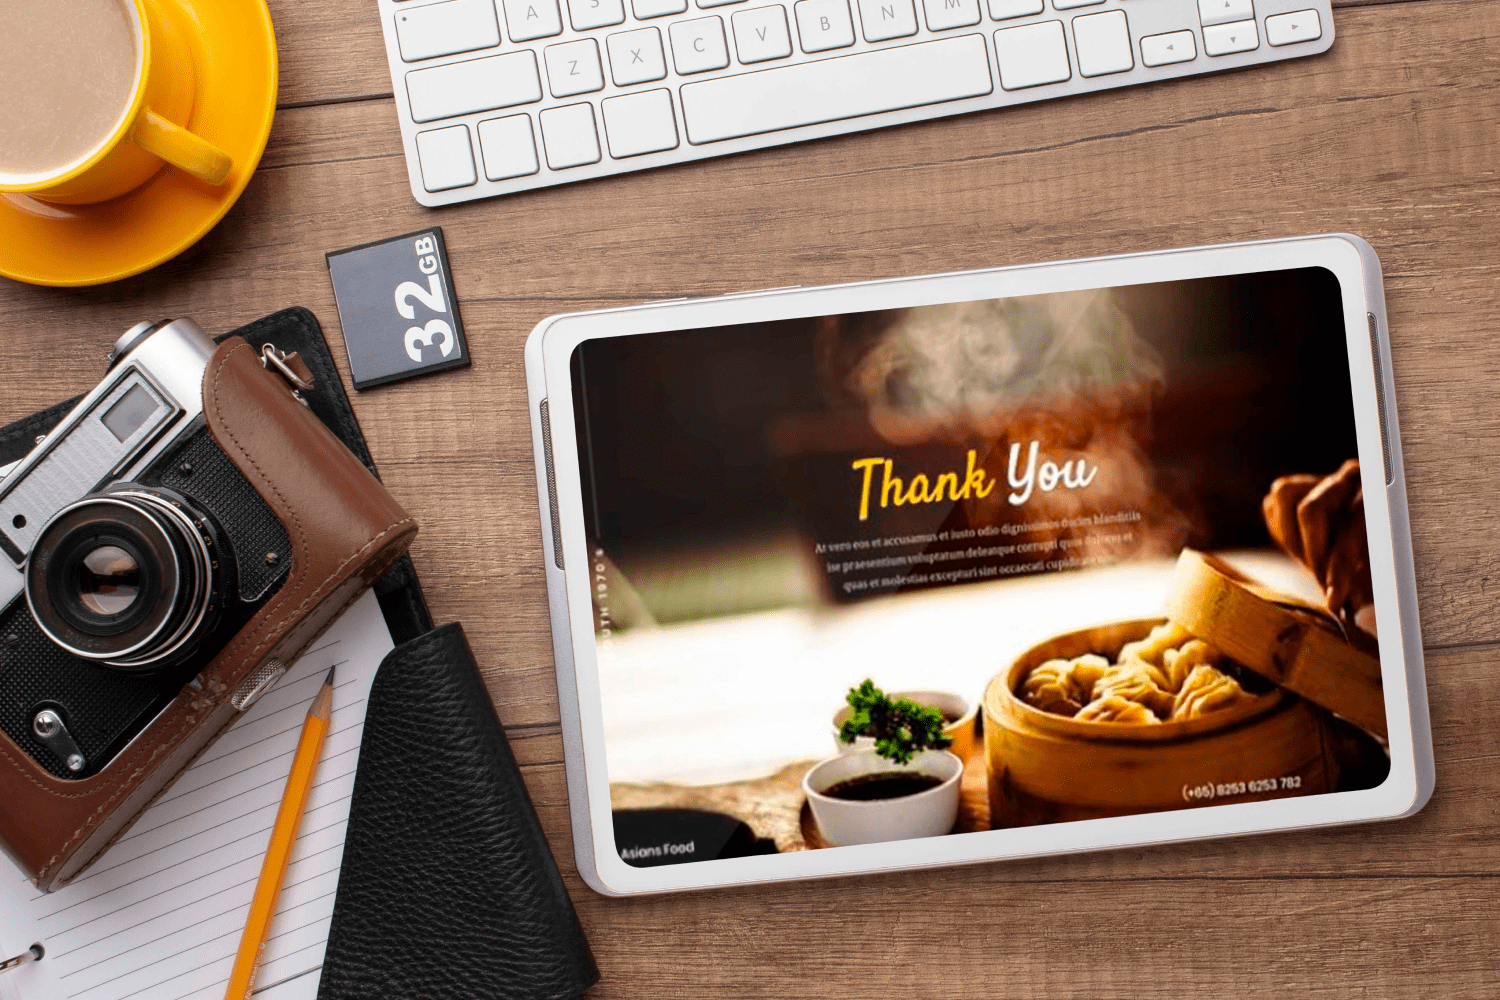 Asians Food - Food PowerPoint by MasterBundles note preview mockup image.